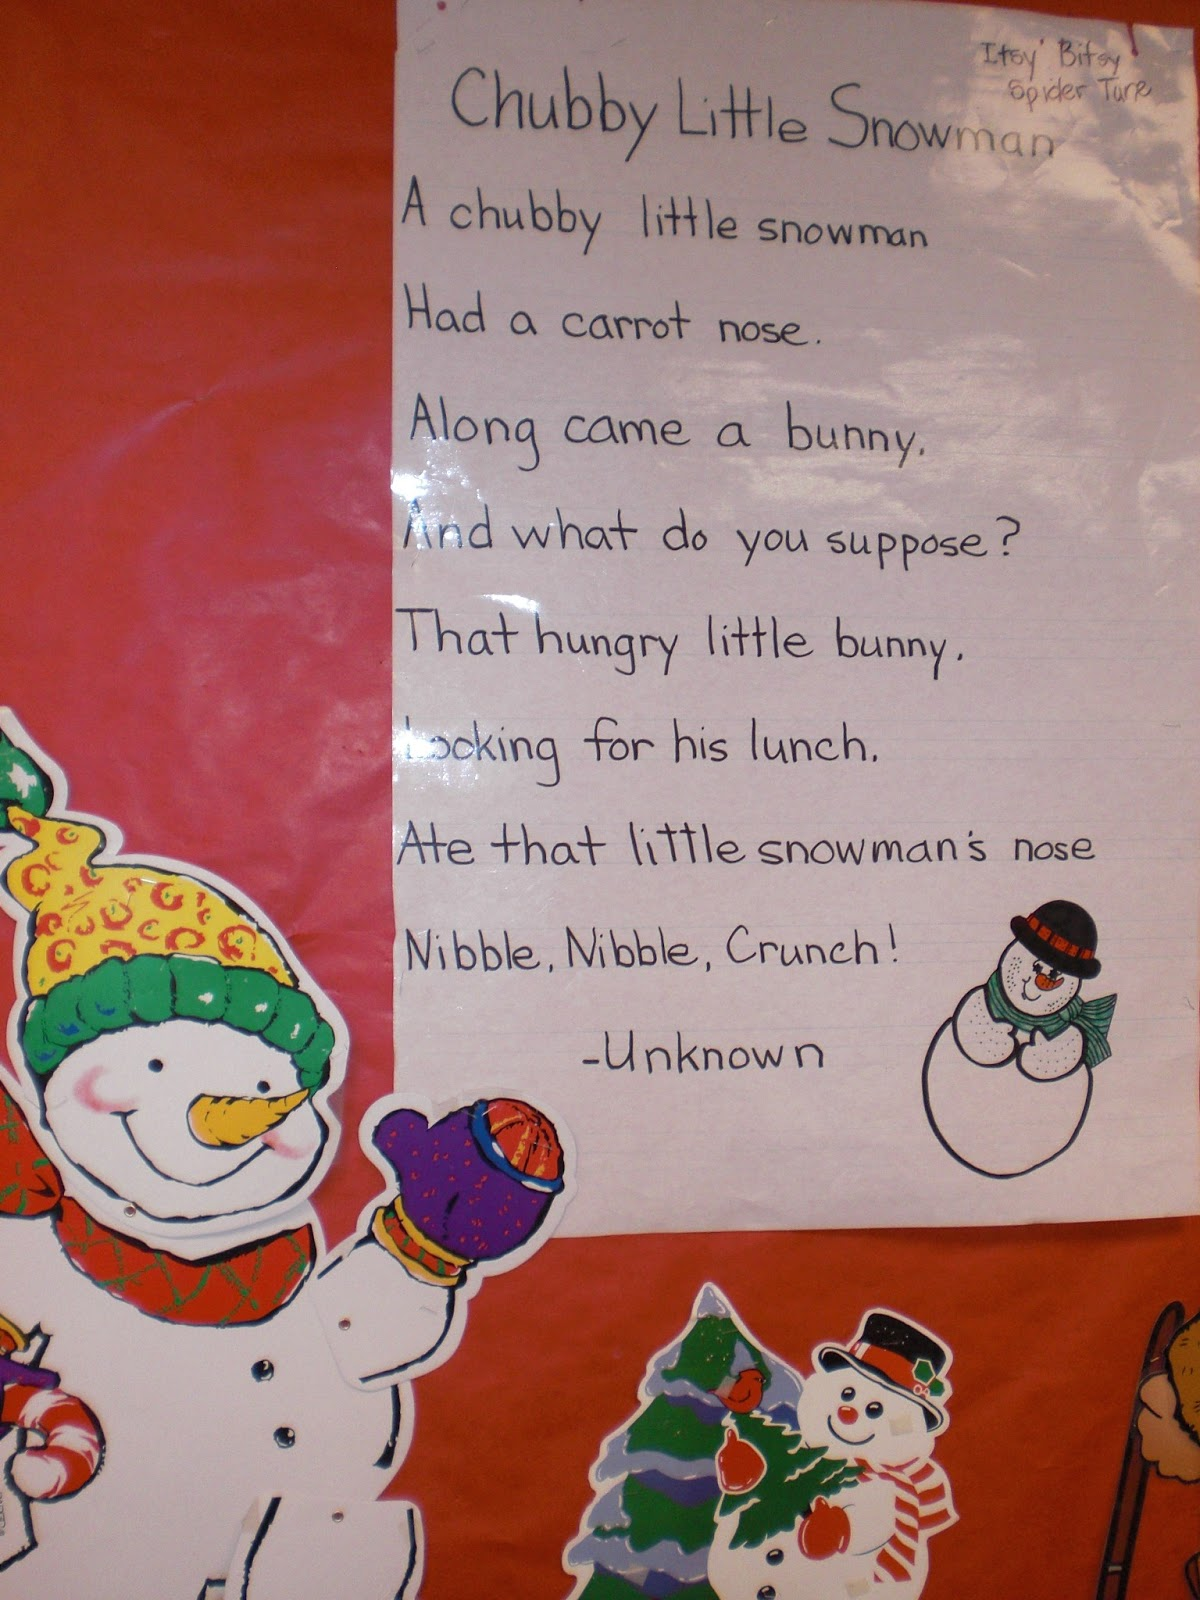 We sing Songs about Snowmen too. Here is one to the tun of Itsy Bitsy ...